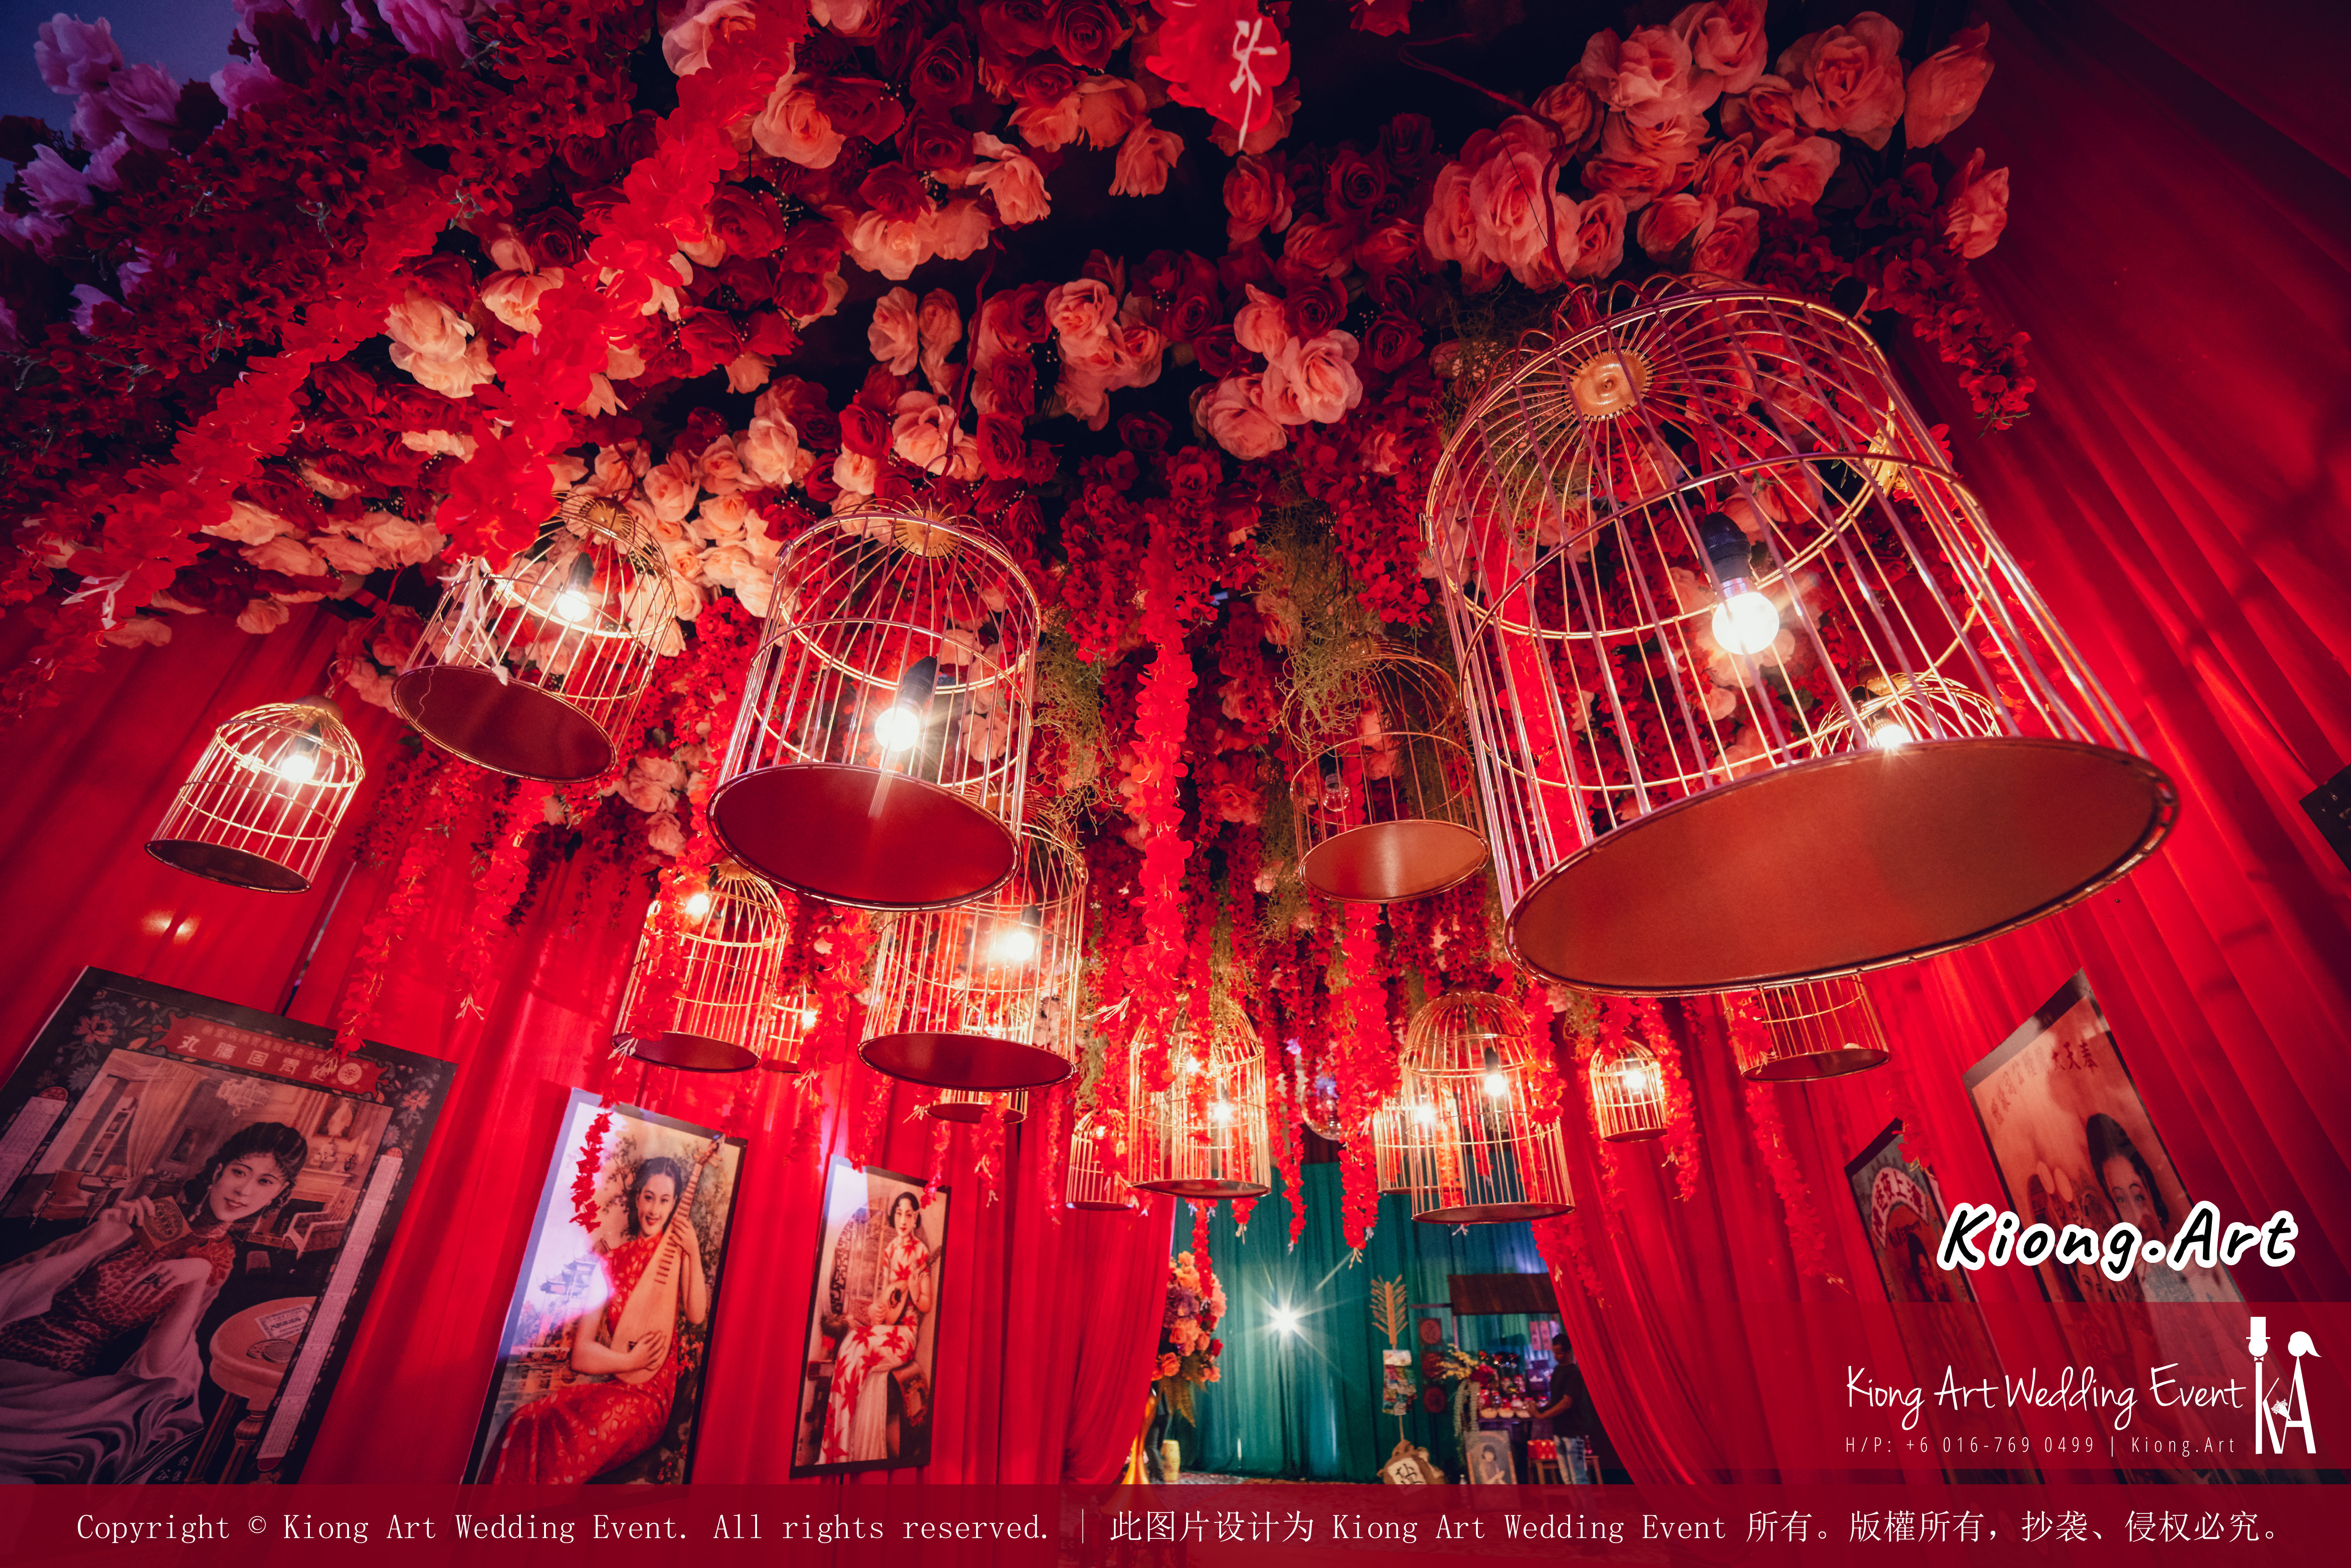 Kuala Lumpur Wedding Deco Decoration Kiong Art Wedding Deco Old Shanghai Style Wedding 旧上海风情婚礼 Steven and Tze Hui at Golden Dragonboat Restaurant 金龙船鱼翅海鲜酒家 Malaysia A16-A03-028